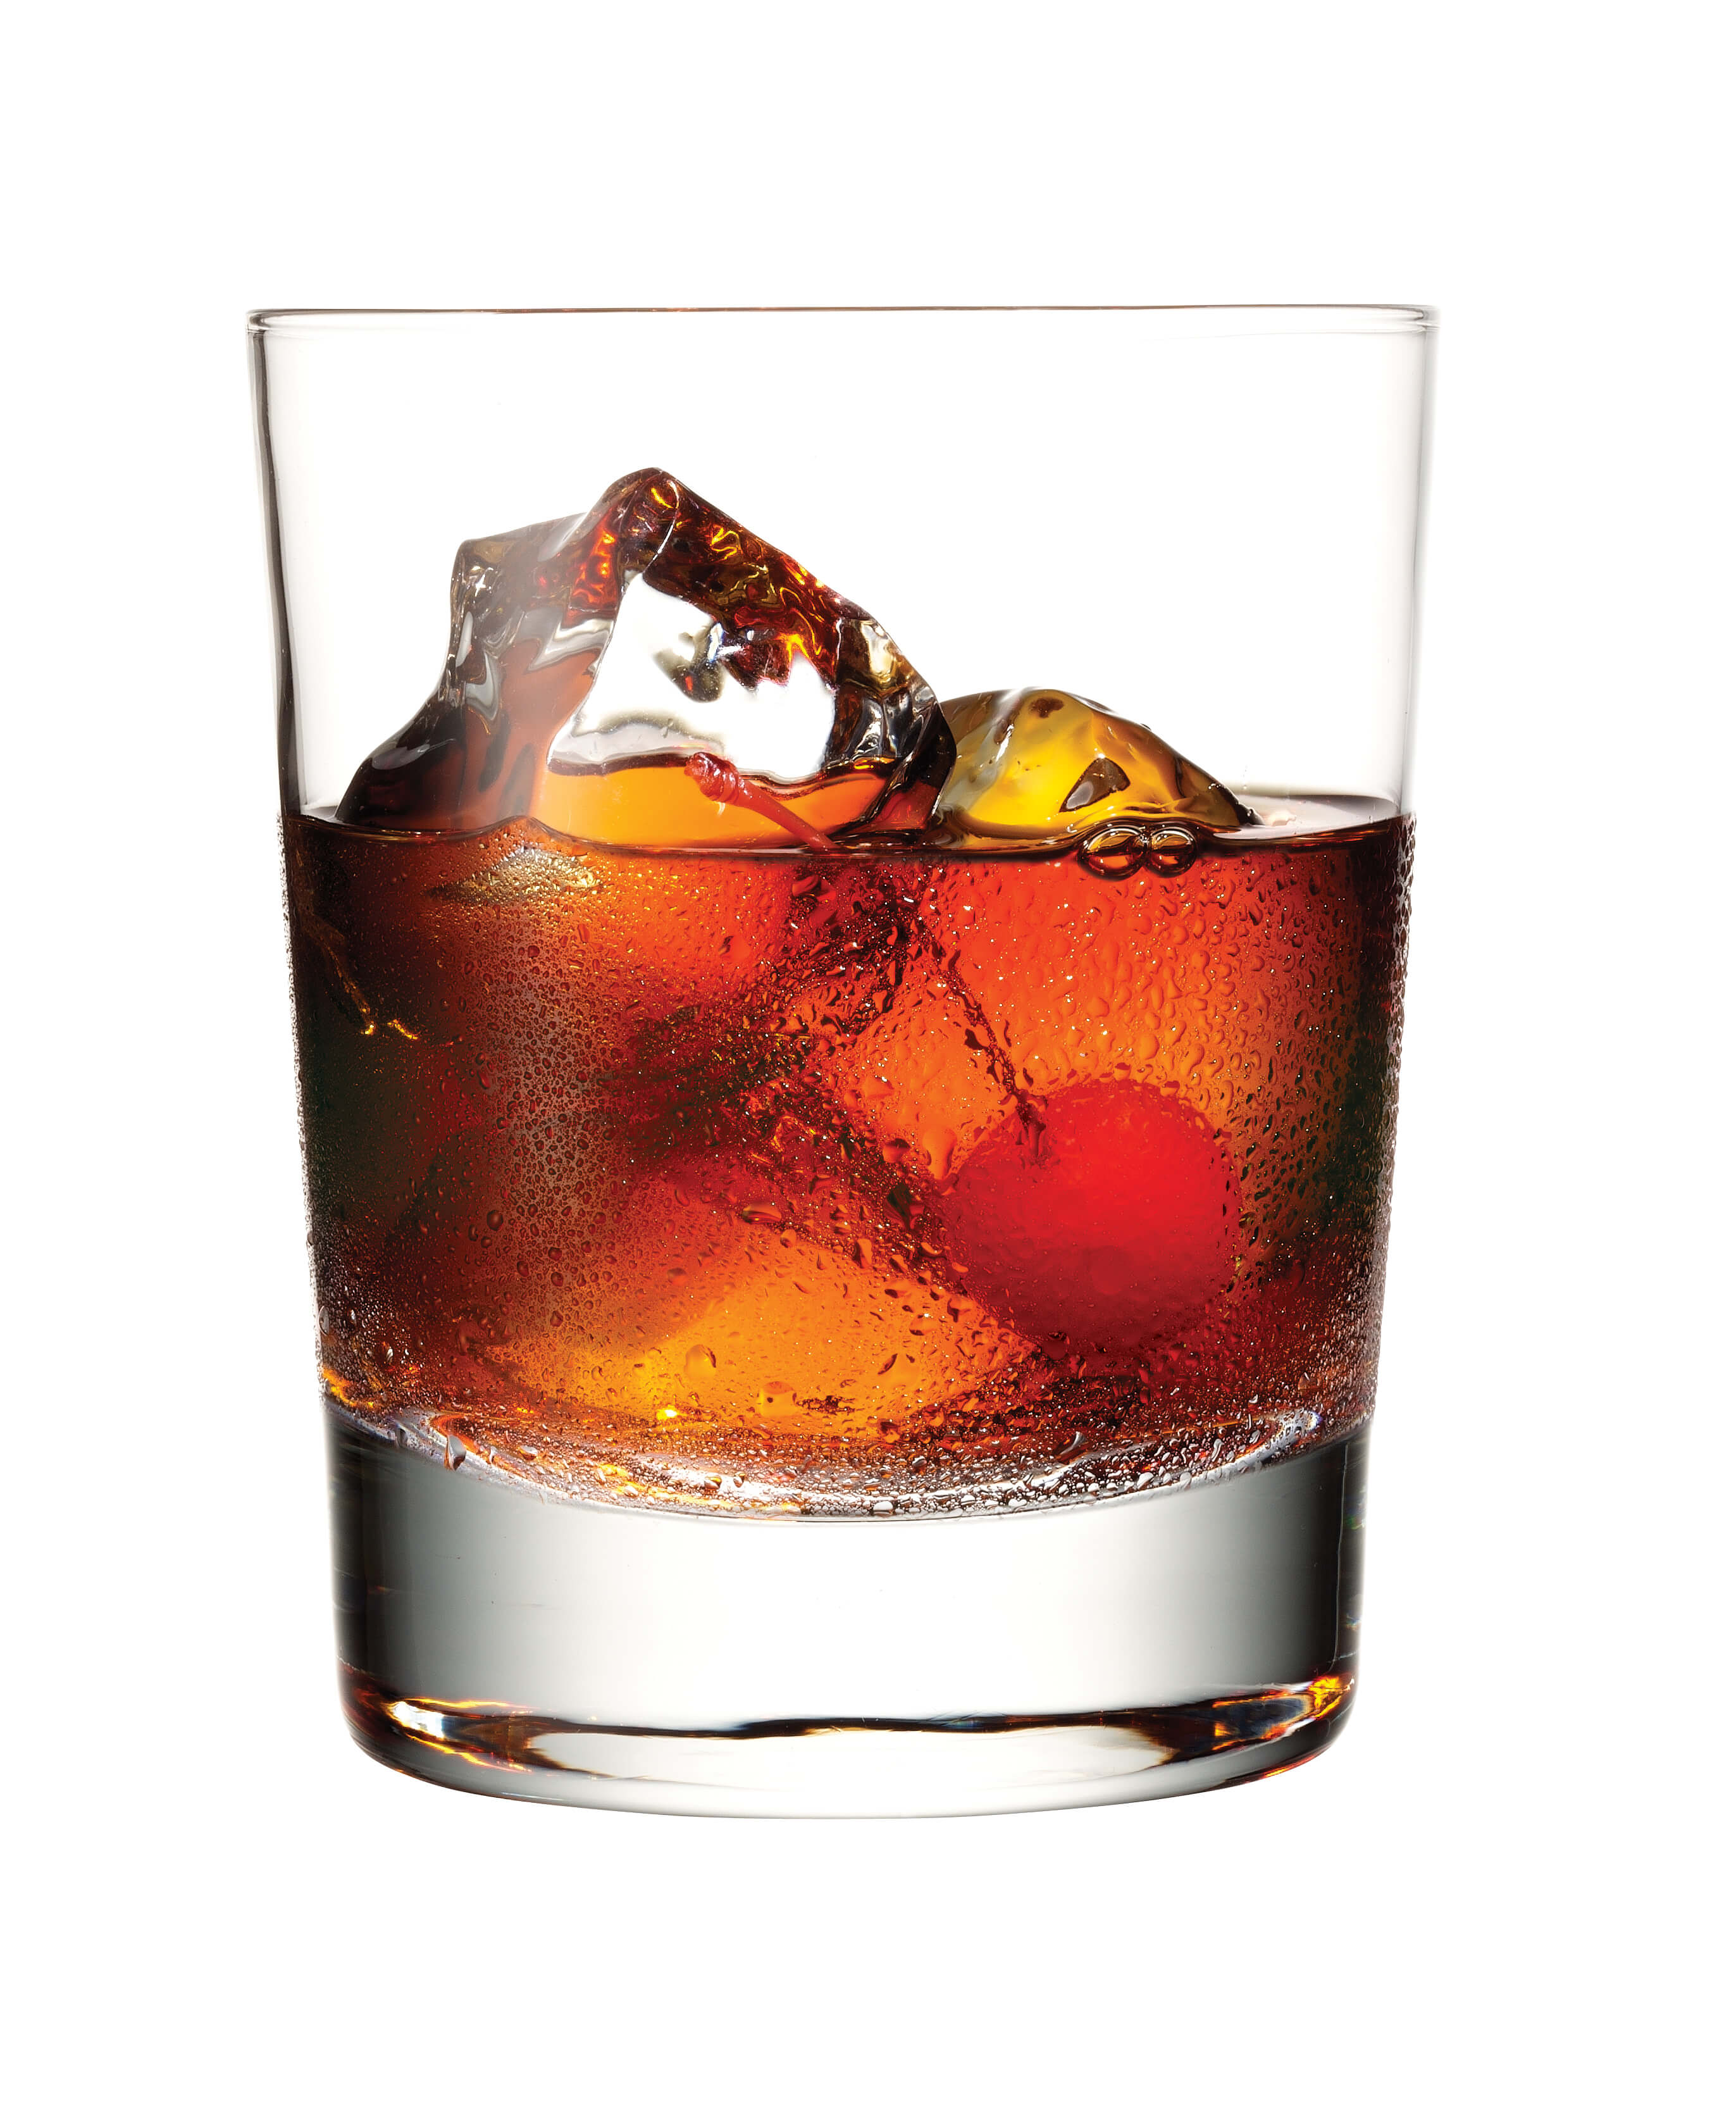 Classic Bourbon and Rye Cocktails - Be A Better Bartender